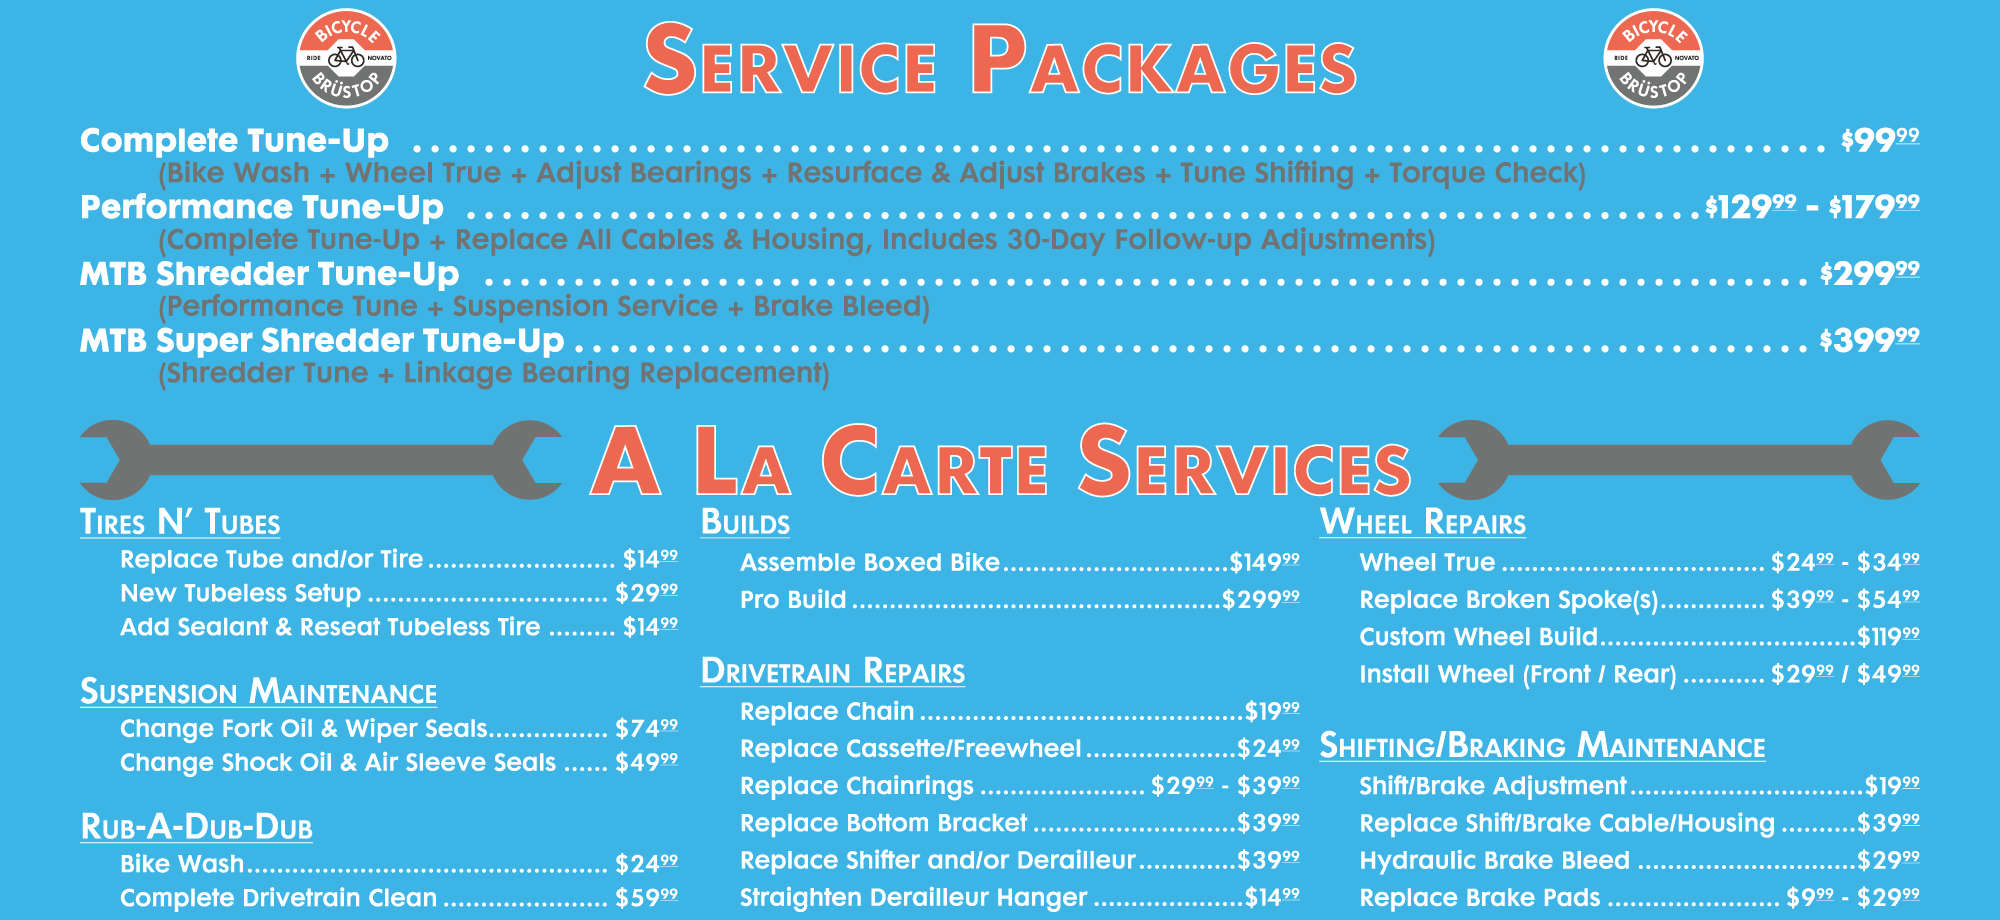 Service Packages and A La Carte SErvices